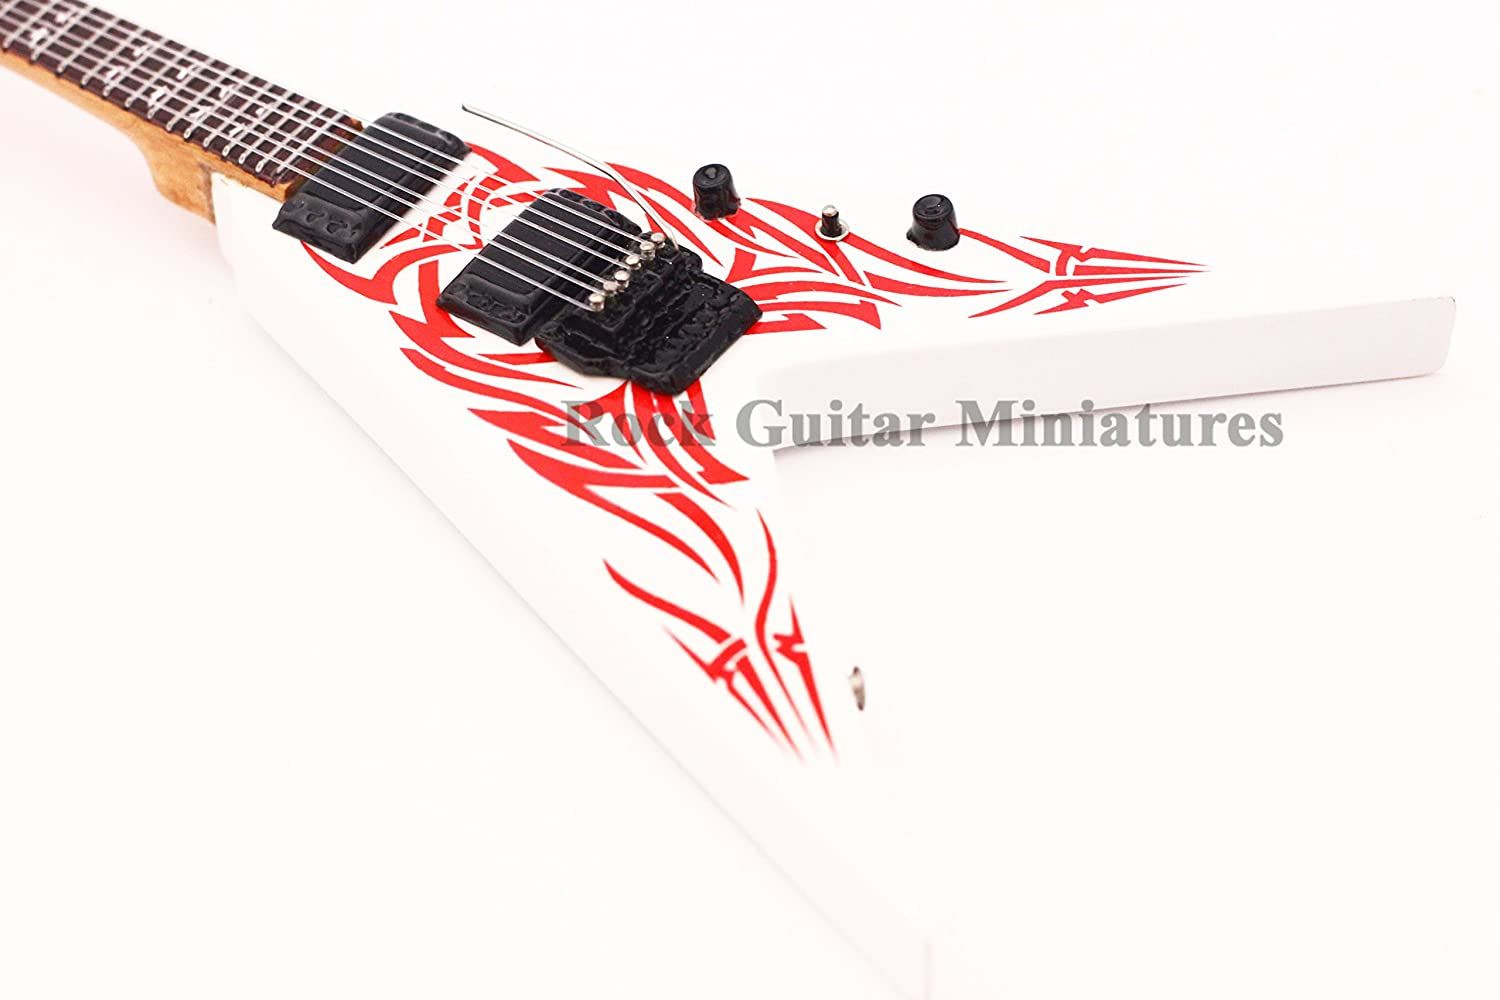 RGM657 BB Rick Kerry King Guitarra en miñatura: Amazon.es: Electrónica